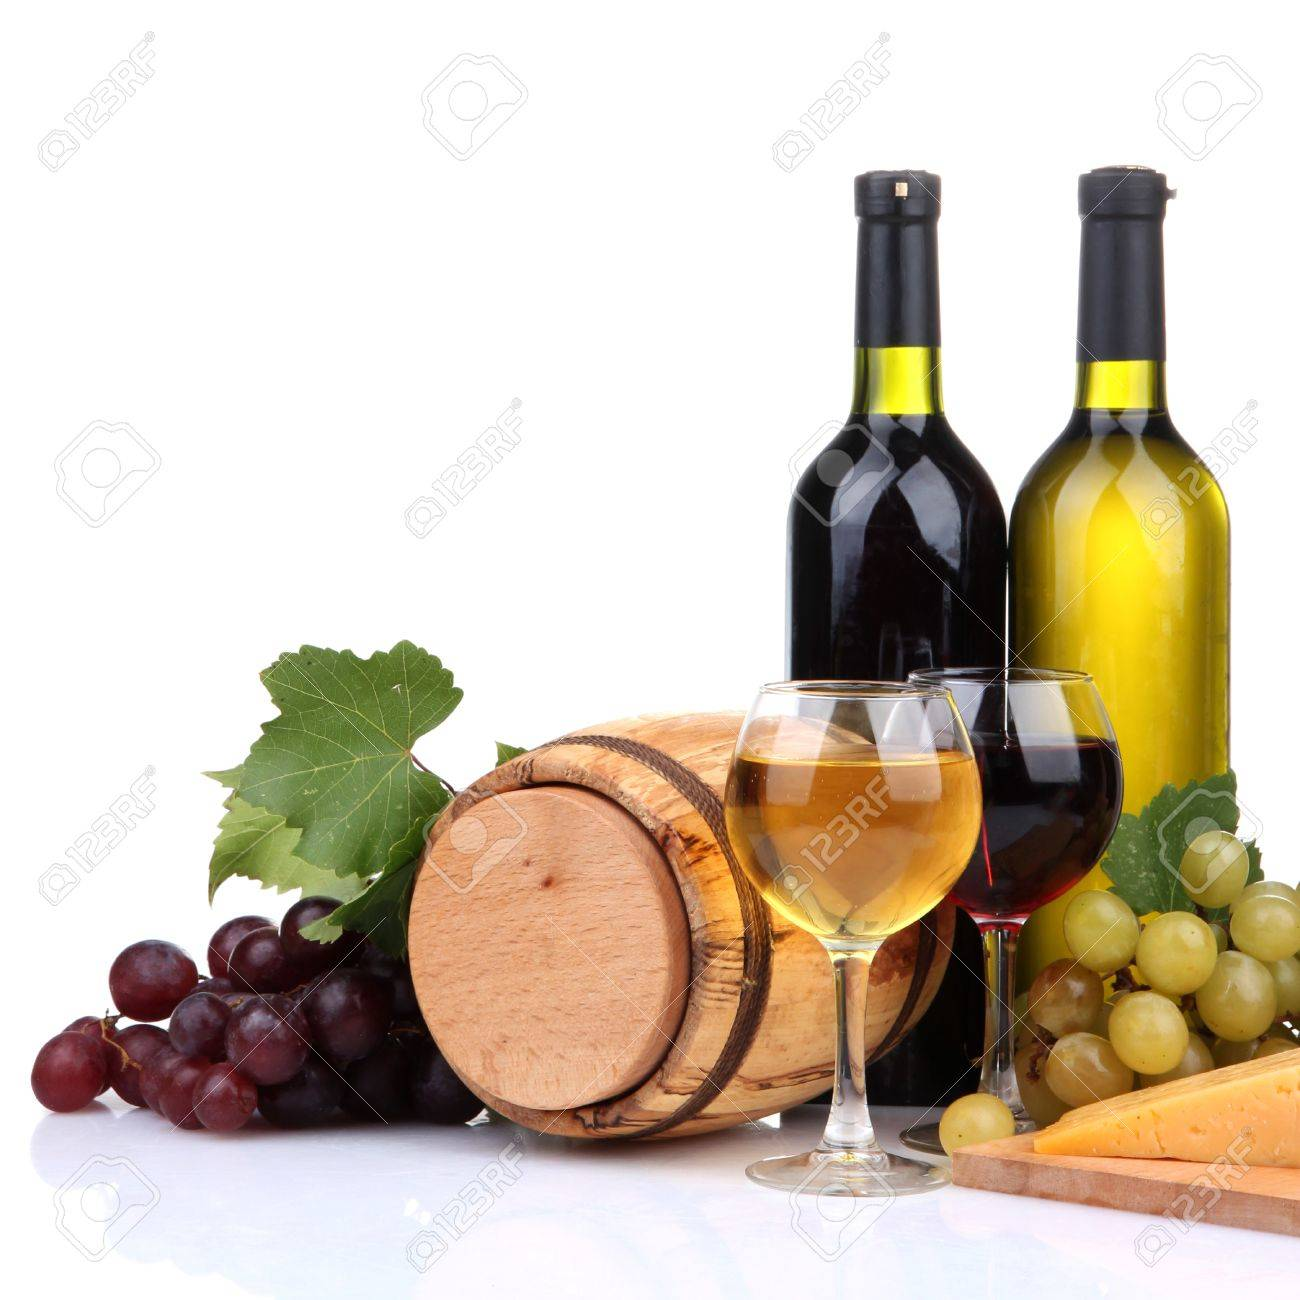 Barrel, bottles and glasses of wine, cheese and grapes, isolated on white Stock Photo - 17290120